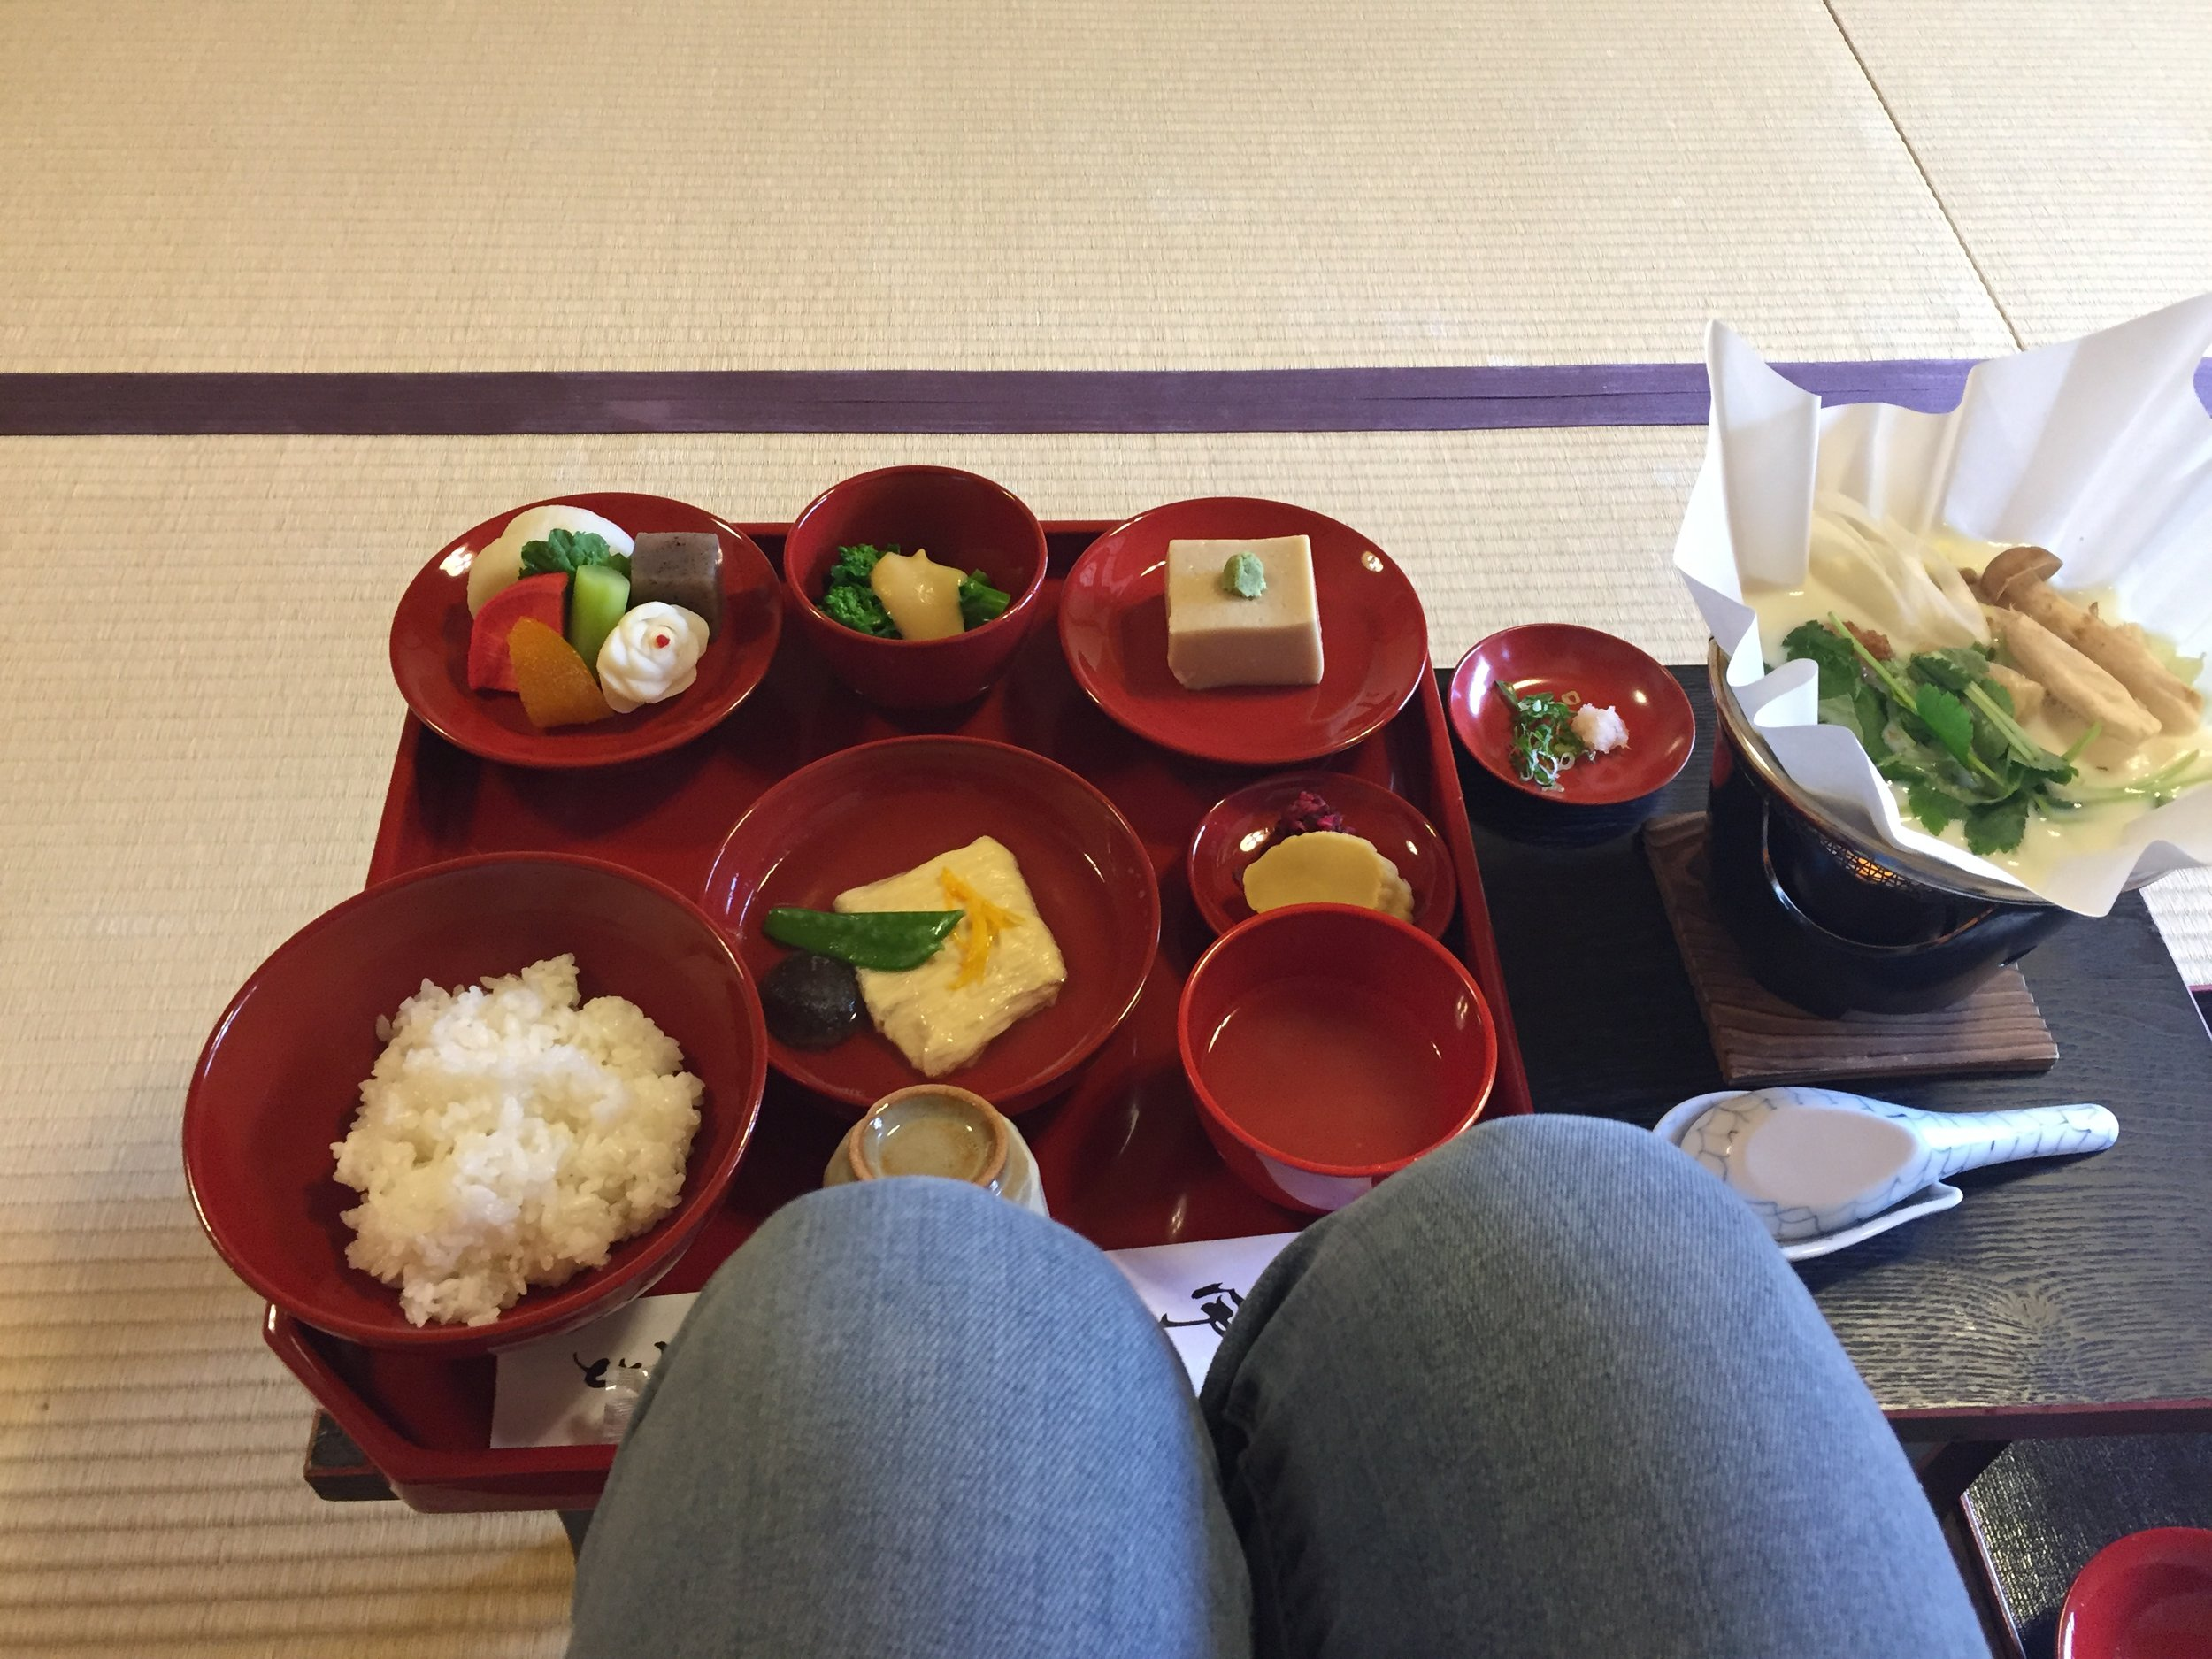 vegan & gluten-free meal at Shigetsu in the Arashiyama area of Kyoto. plant-based!